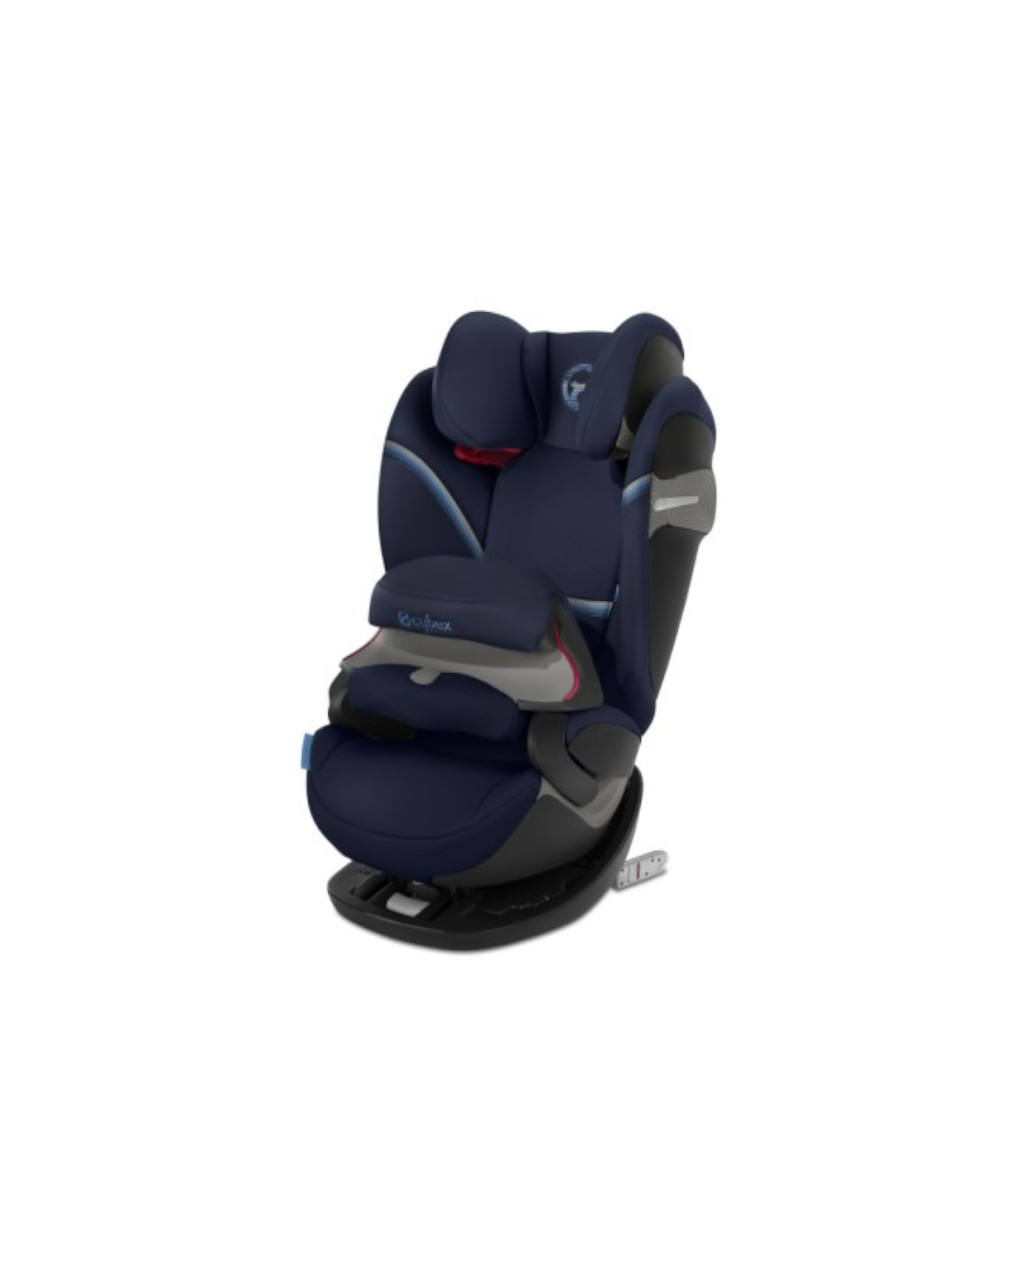 Pallas s-fix navy blue (gr.1/2/3) - Cybex